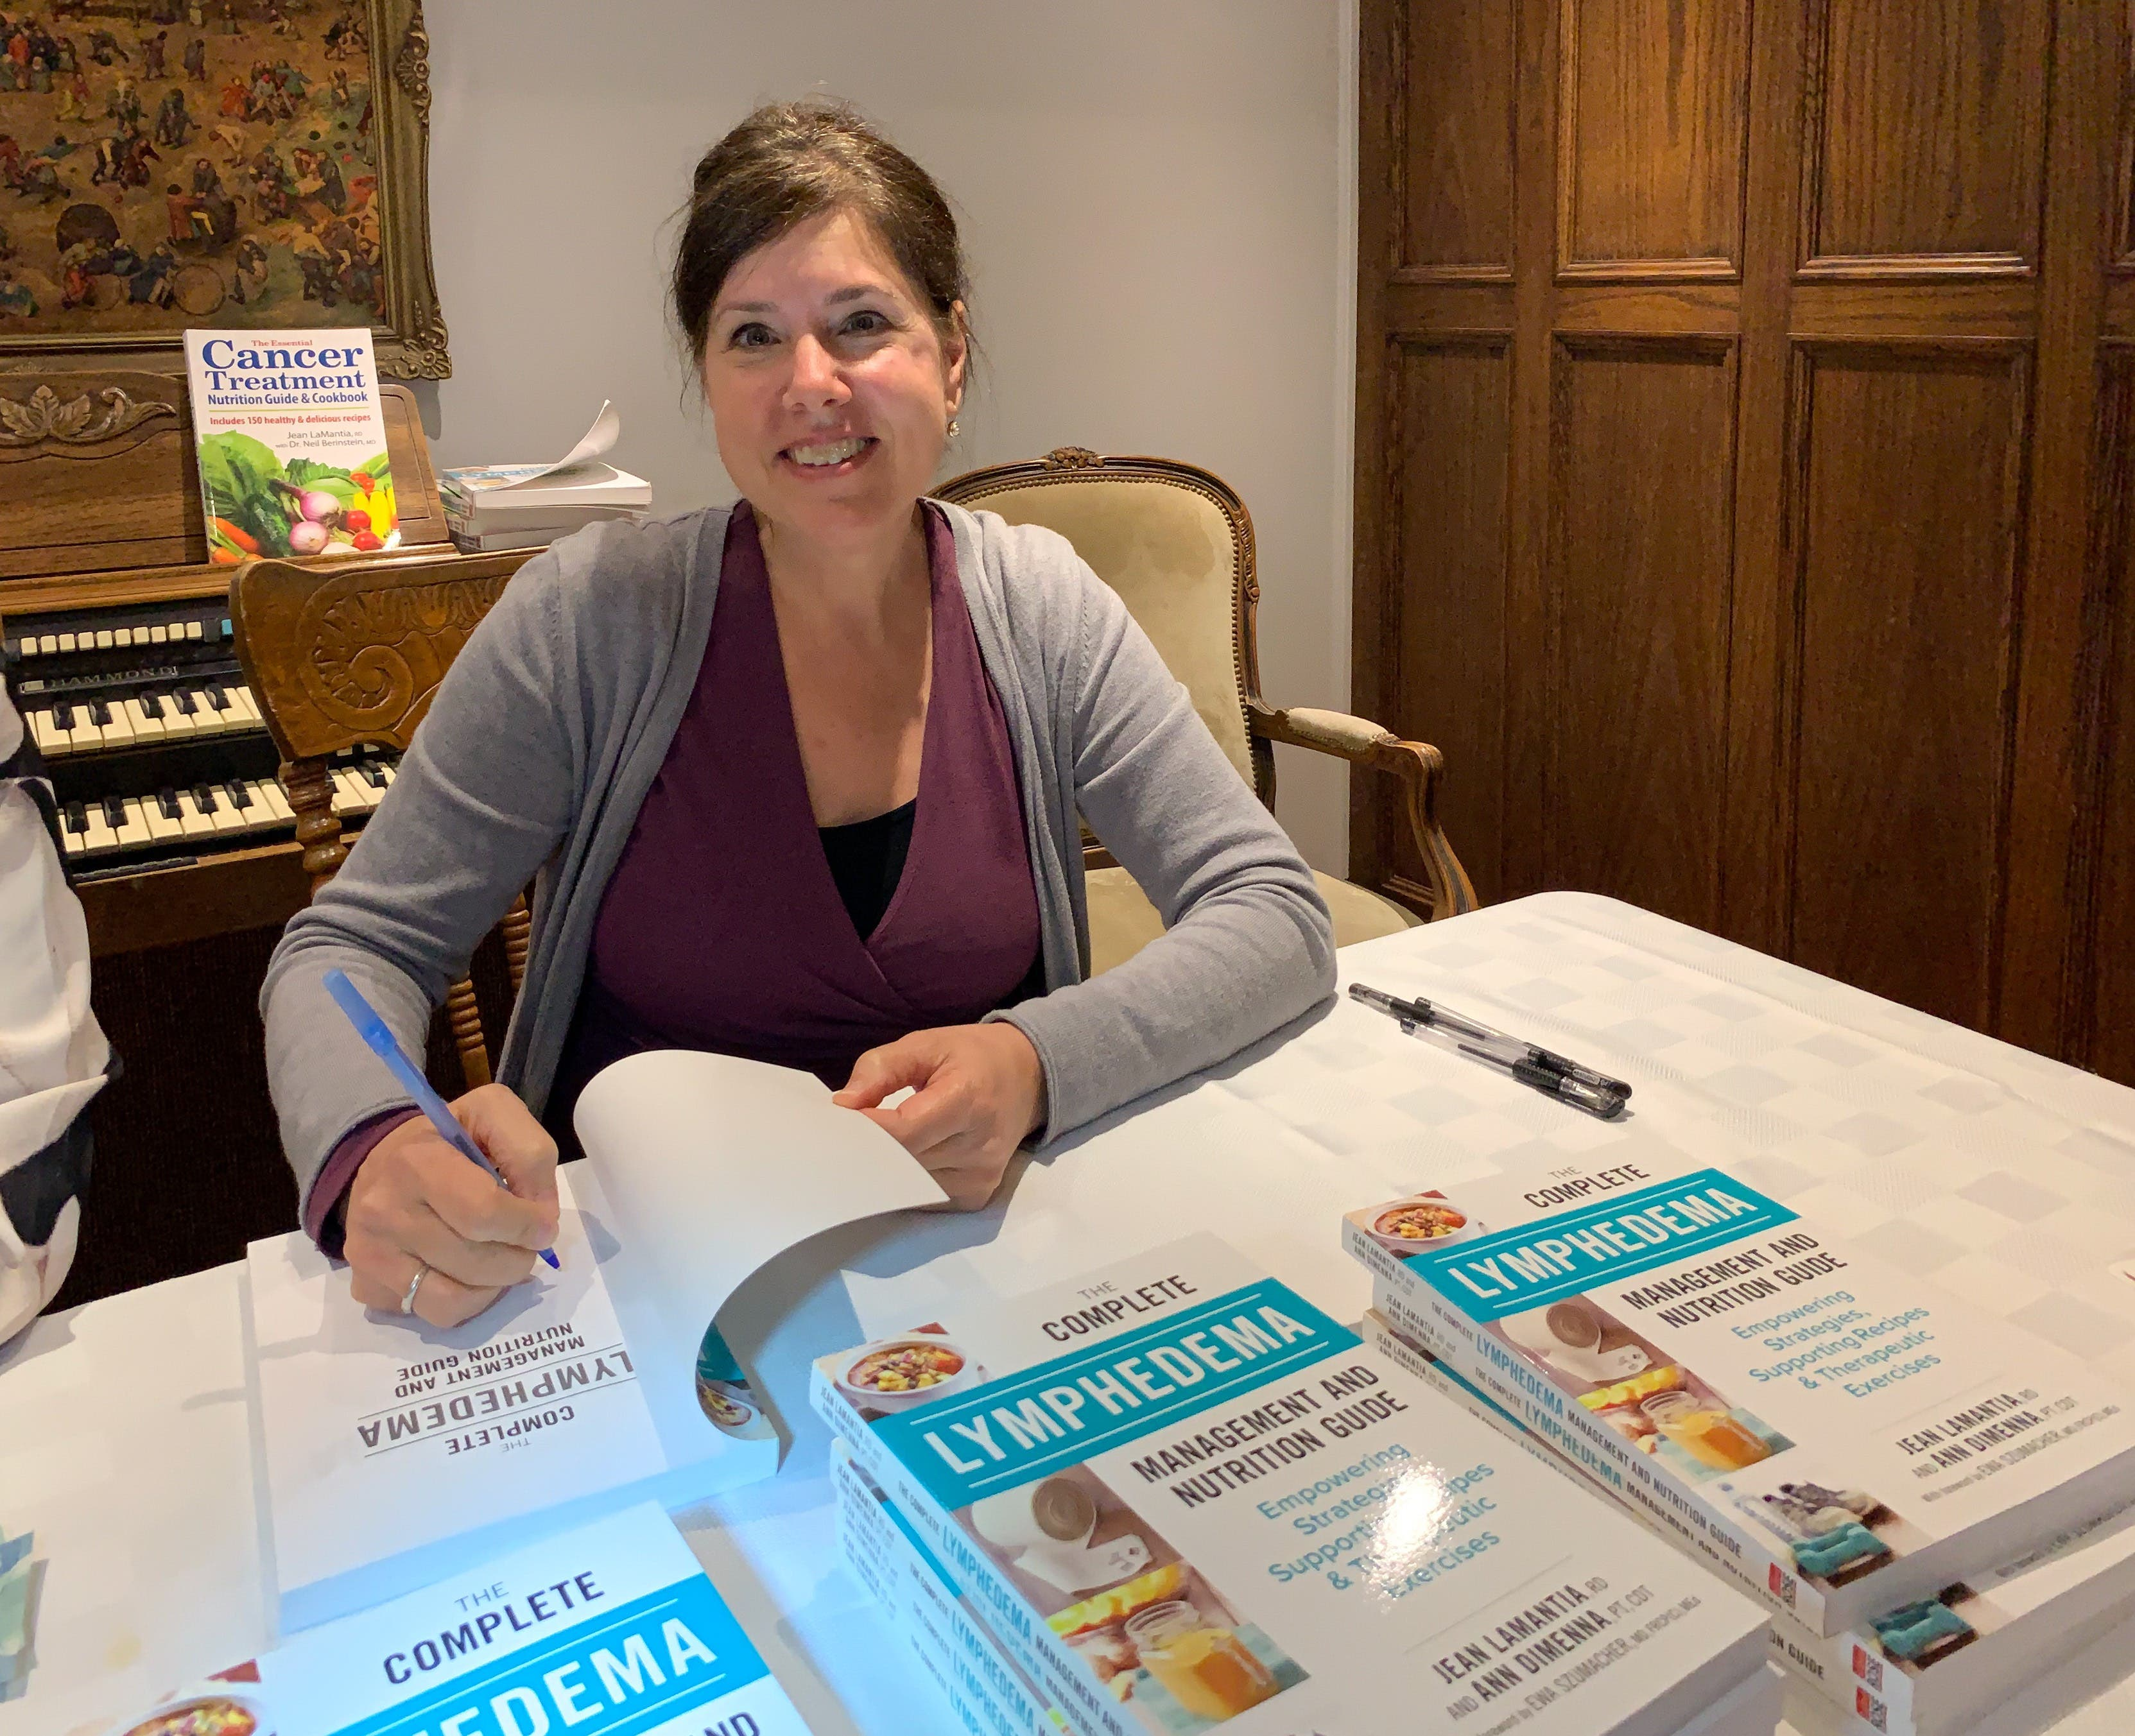 Receive a signed copy of The Complete Lymphedema Management and Nutrition Guide as a bonus when you enrolled in Lymphedema Nutrition School